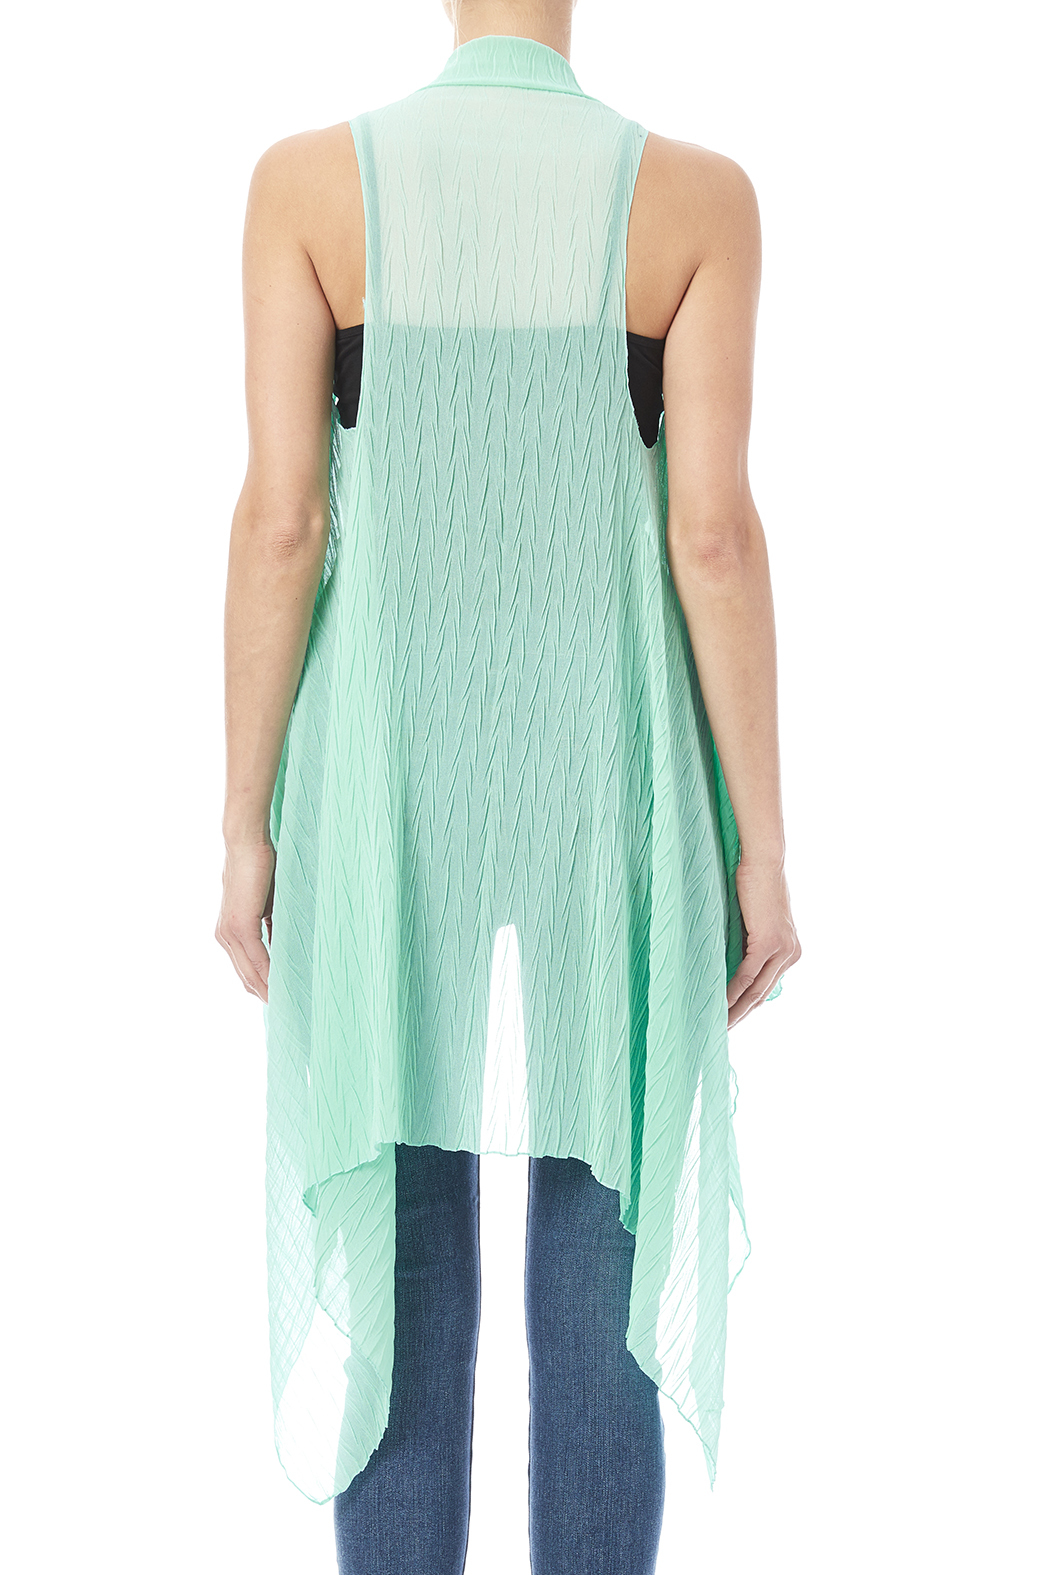 couture fashion rippled mint green vest from